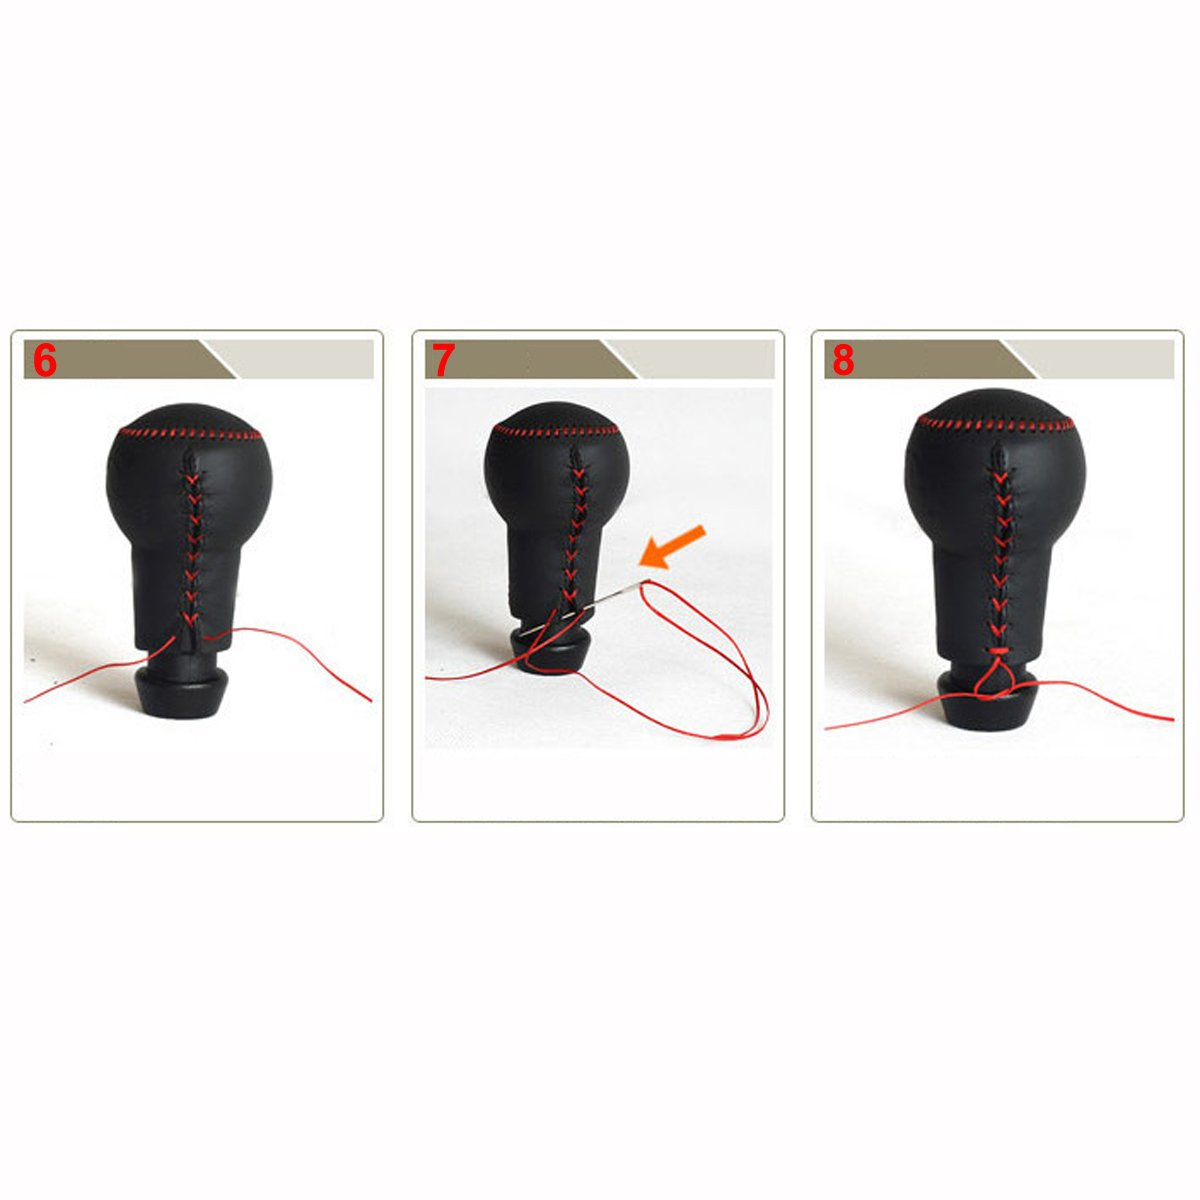 Red with Red Wire Coolbestda Hand Sewing Genuine Leather Gear Shift Knob Cover Shifter Case for 2016 2017 2018 2019 Honda Civic Coupe Hatchback Automatic Black